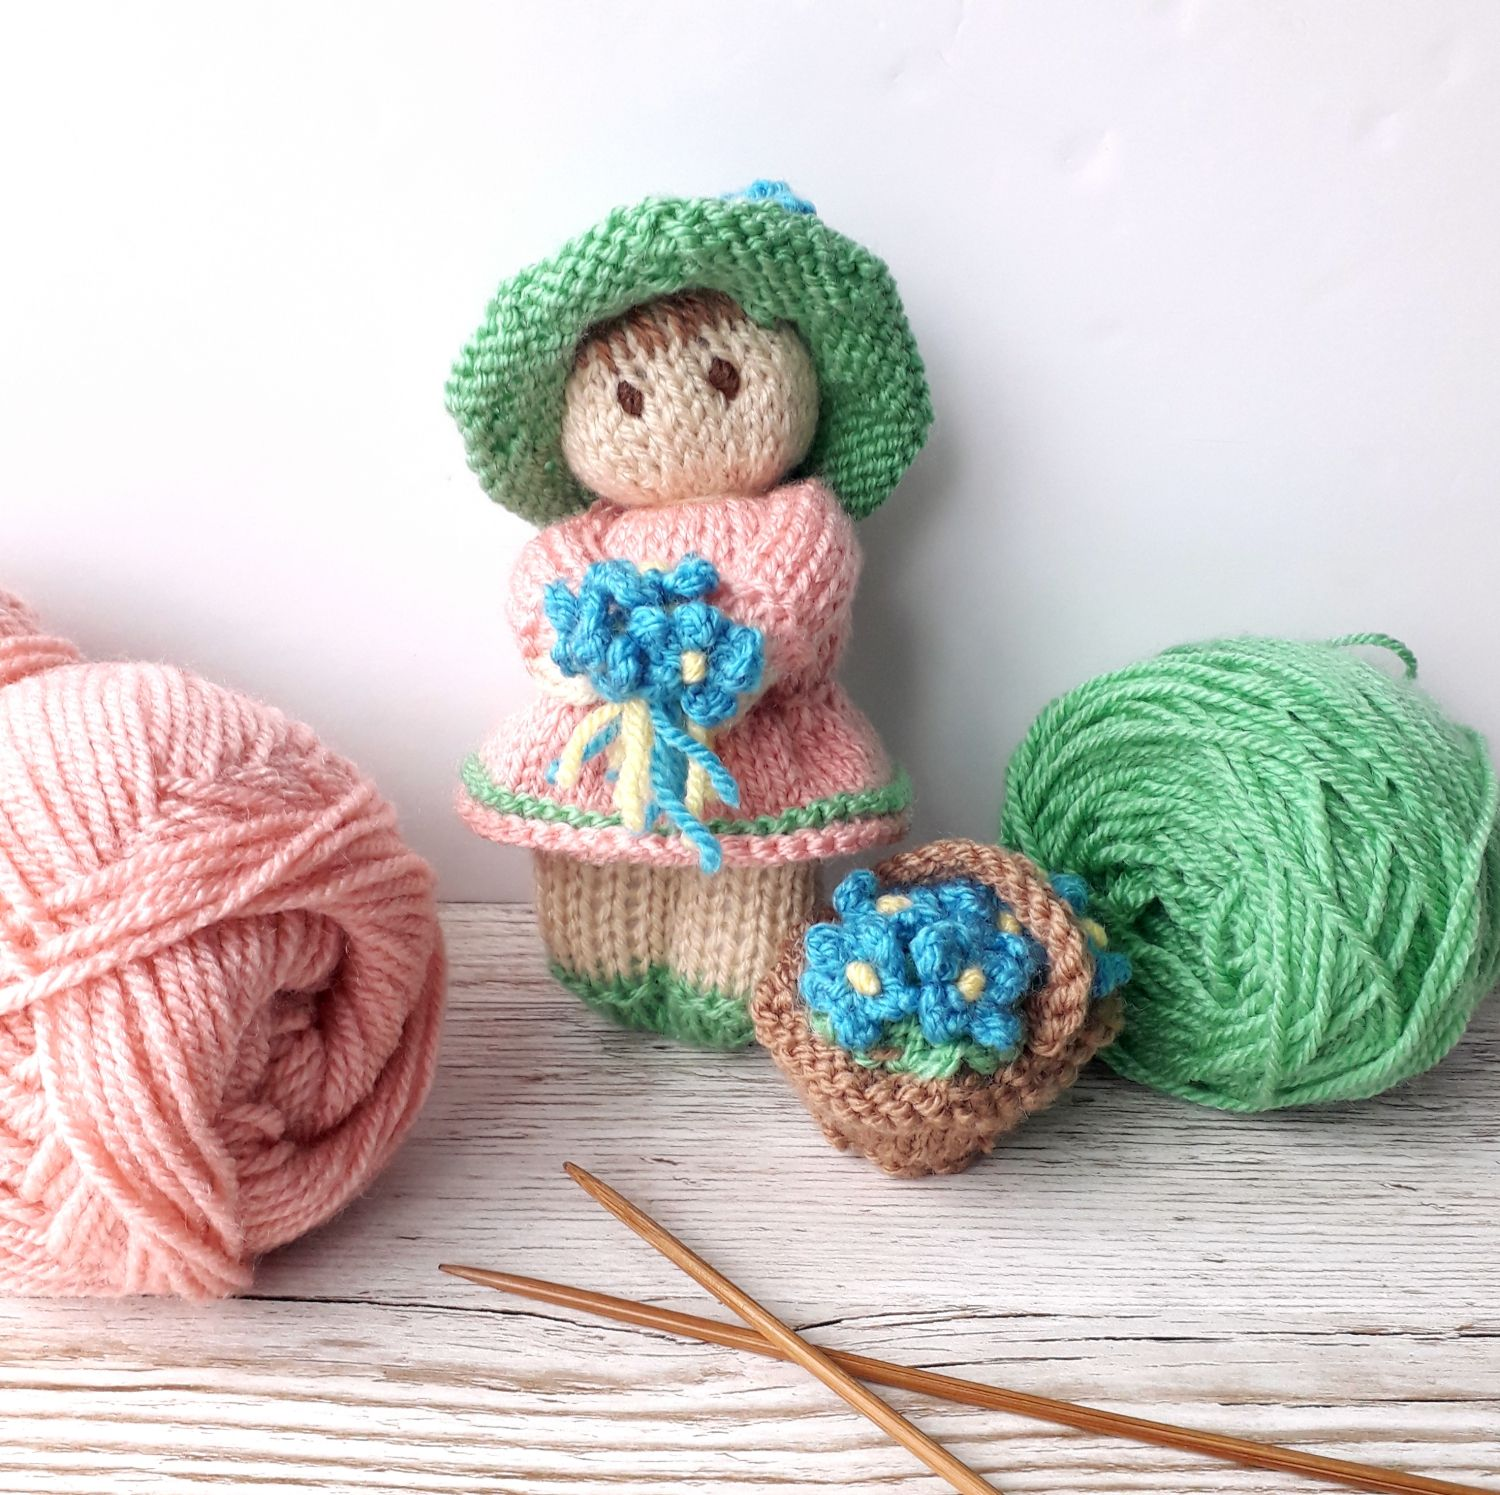 Flower Garden Bitsy Baby Doll pattern by Claire Fairall